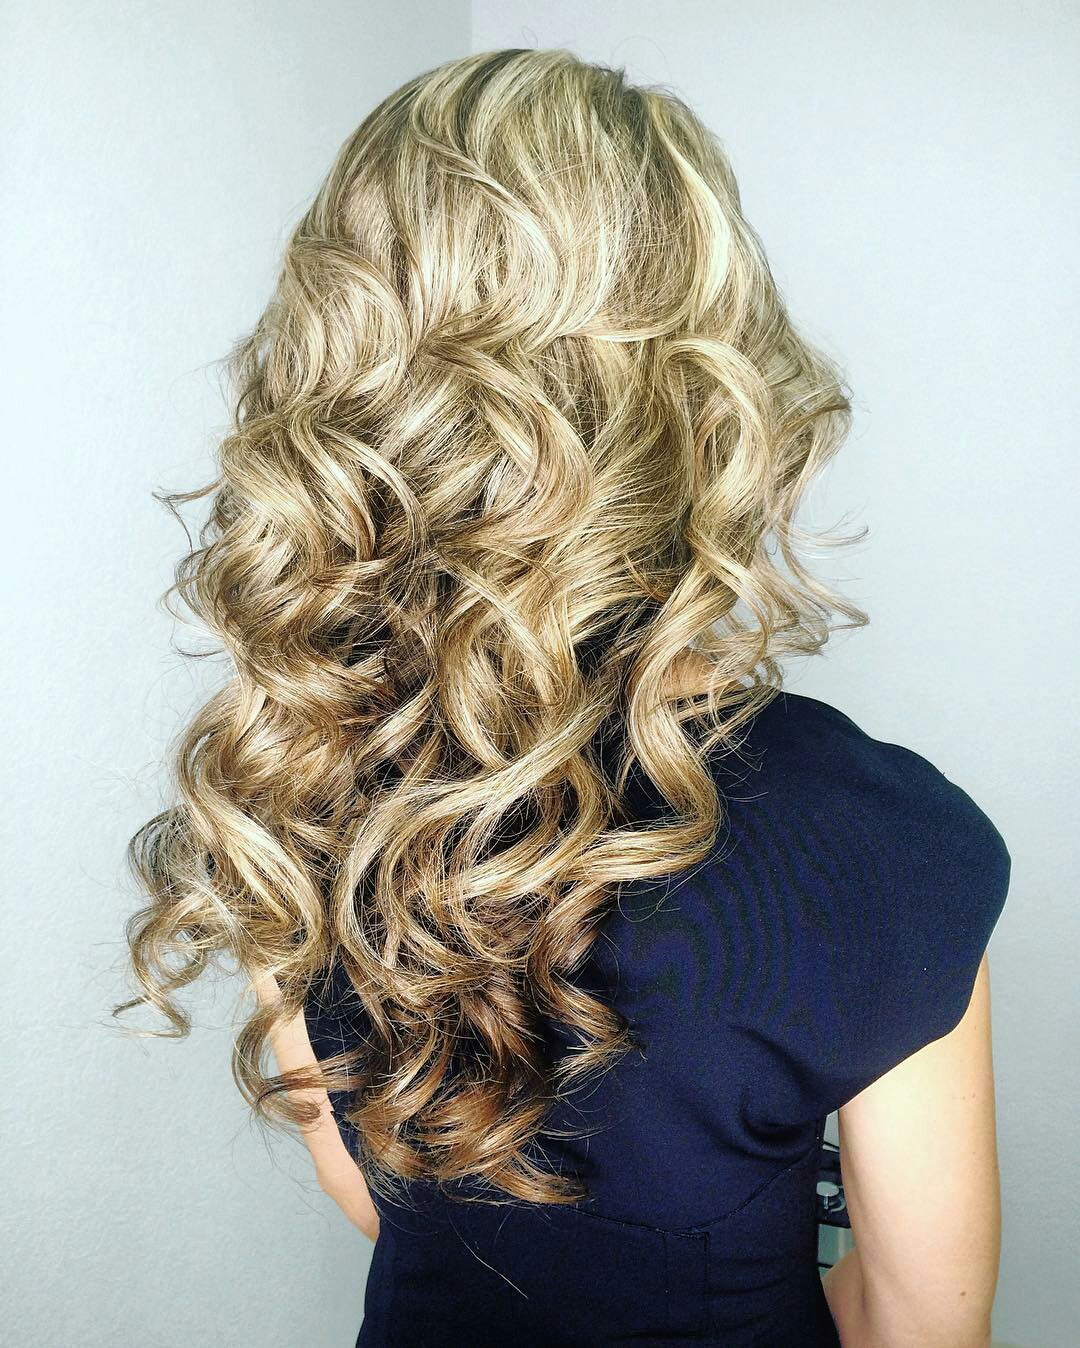 Loose Curls For Medium Hair: How to Curl Medium Length Hair  LadyLife